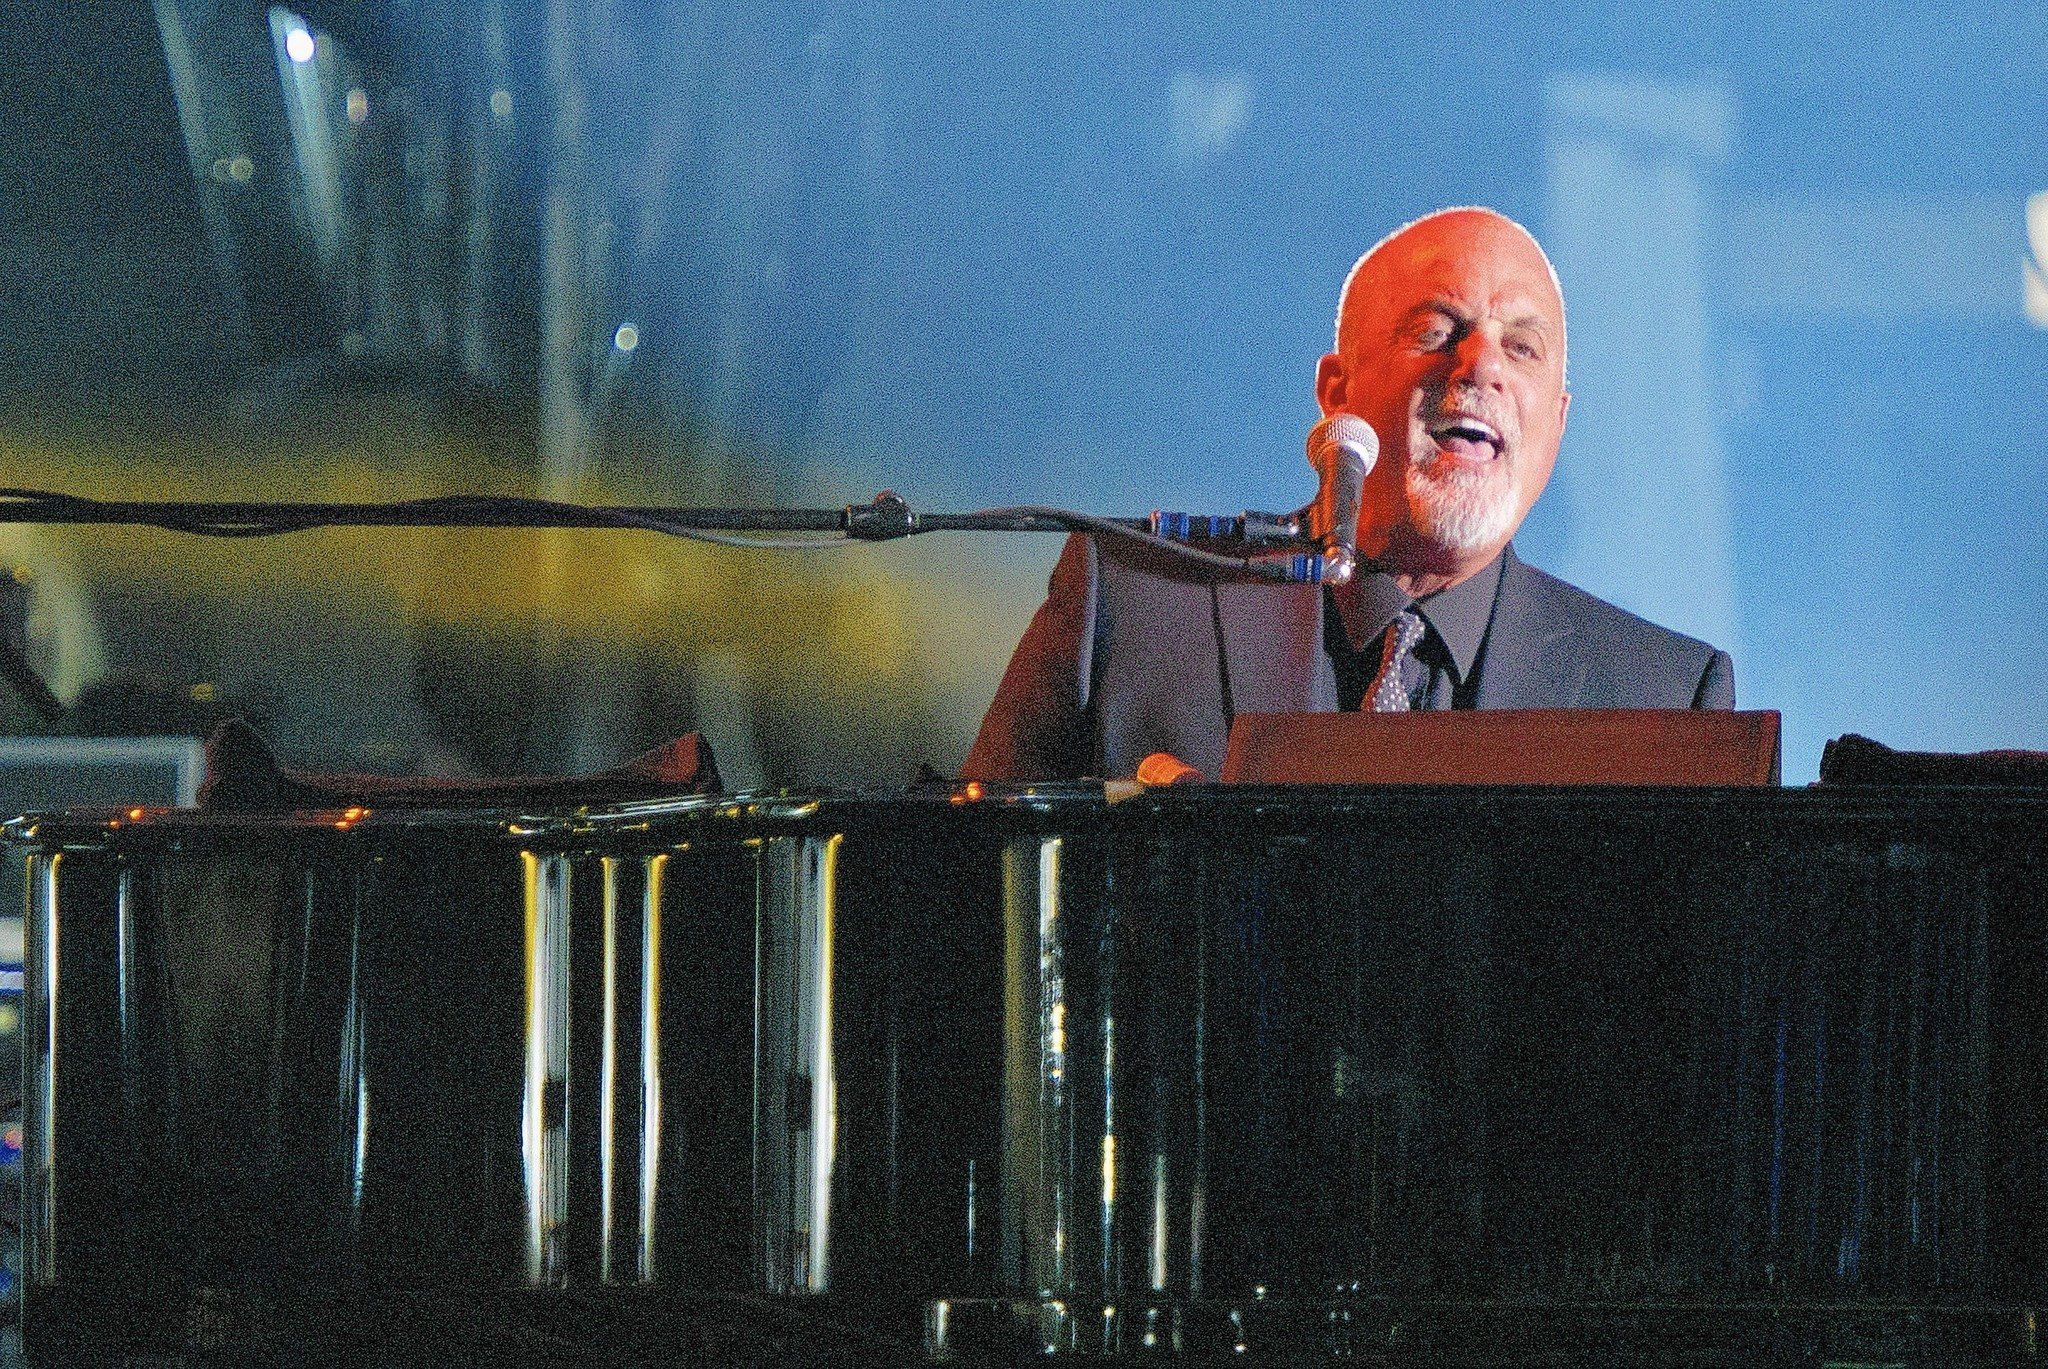 Billy Joel Orlando show set for Dec. 31 at Amway Center ...